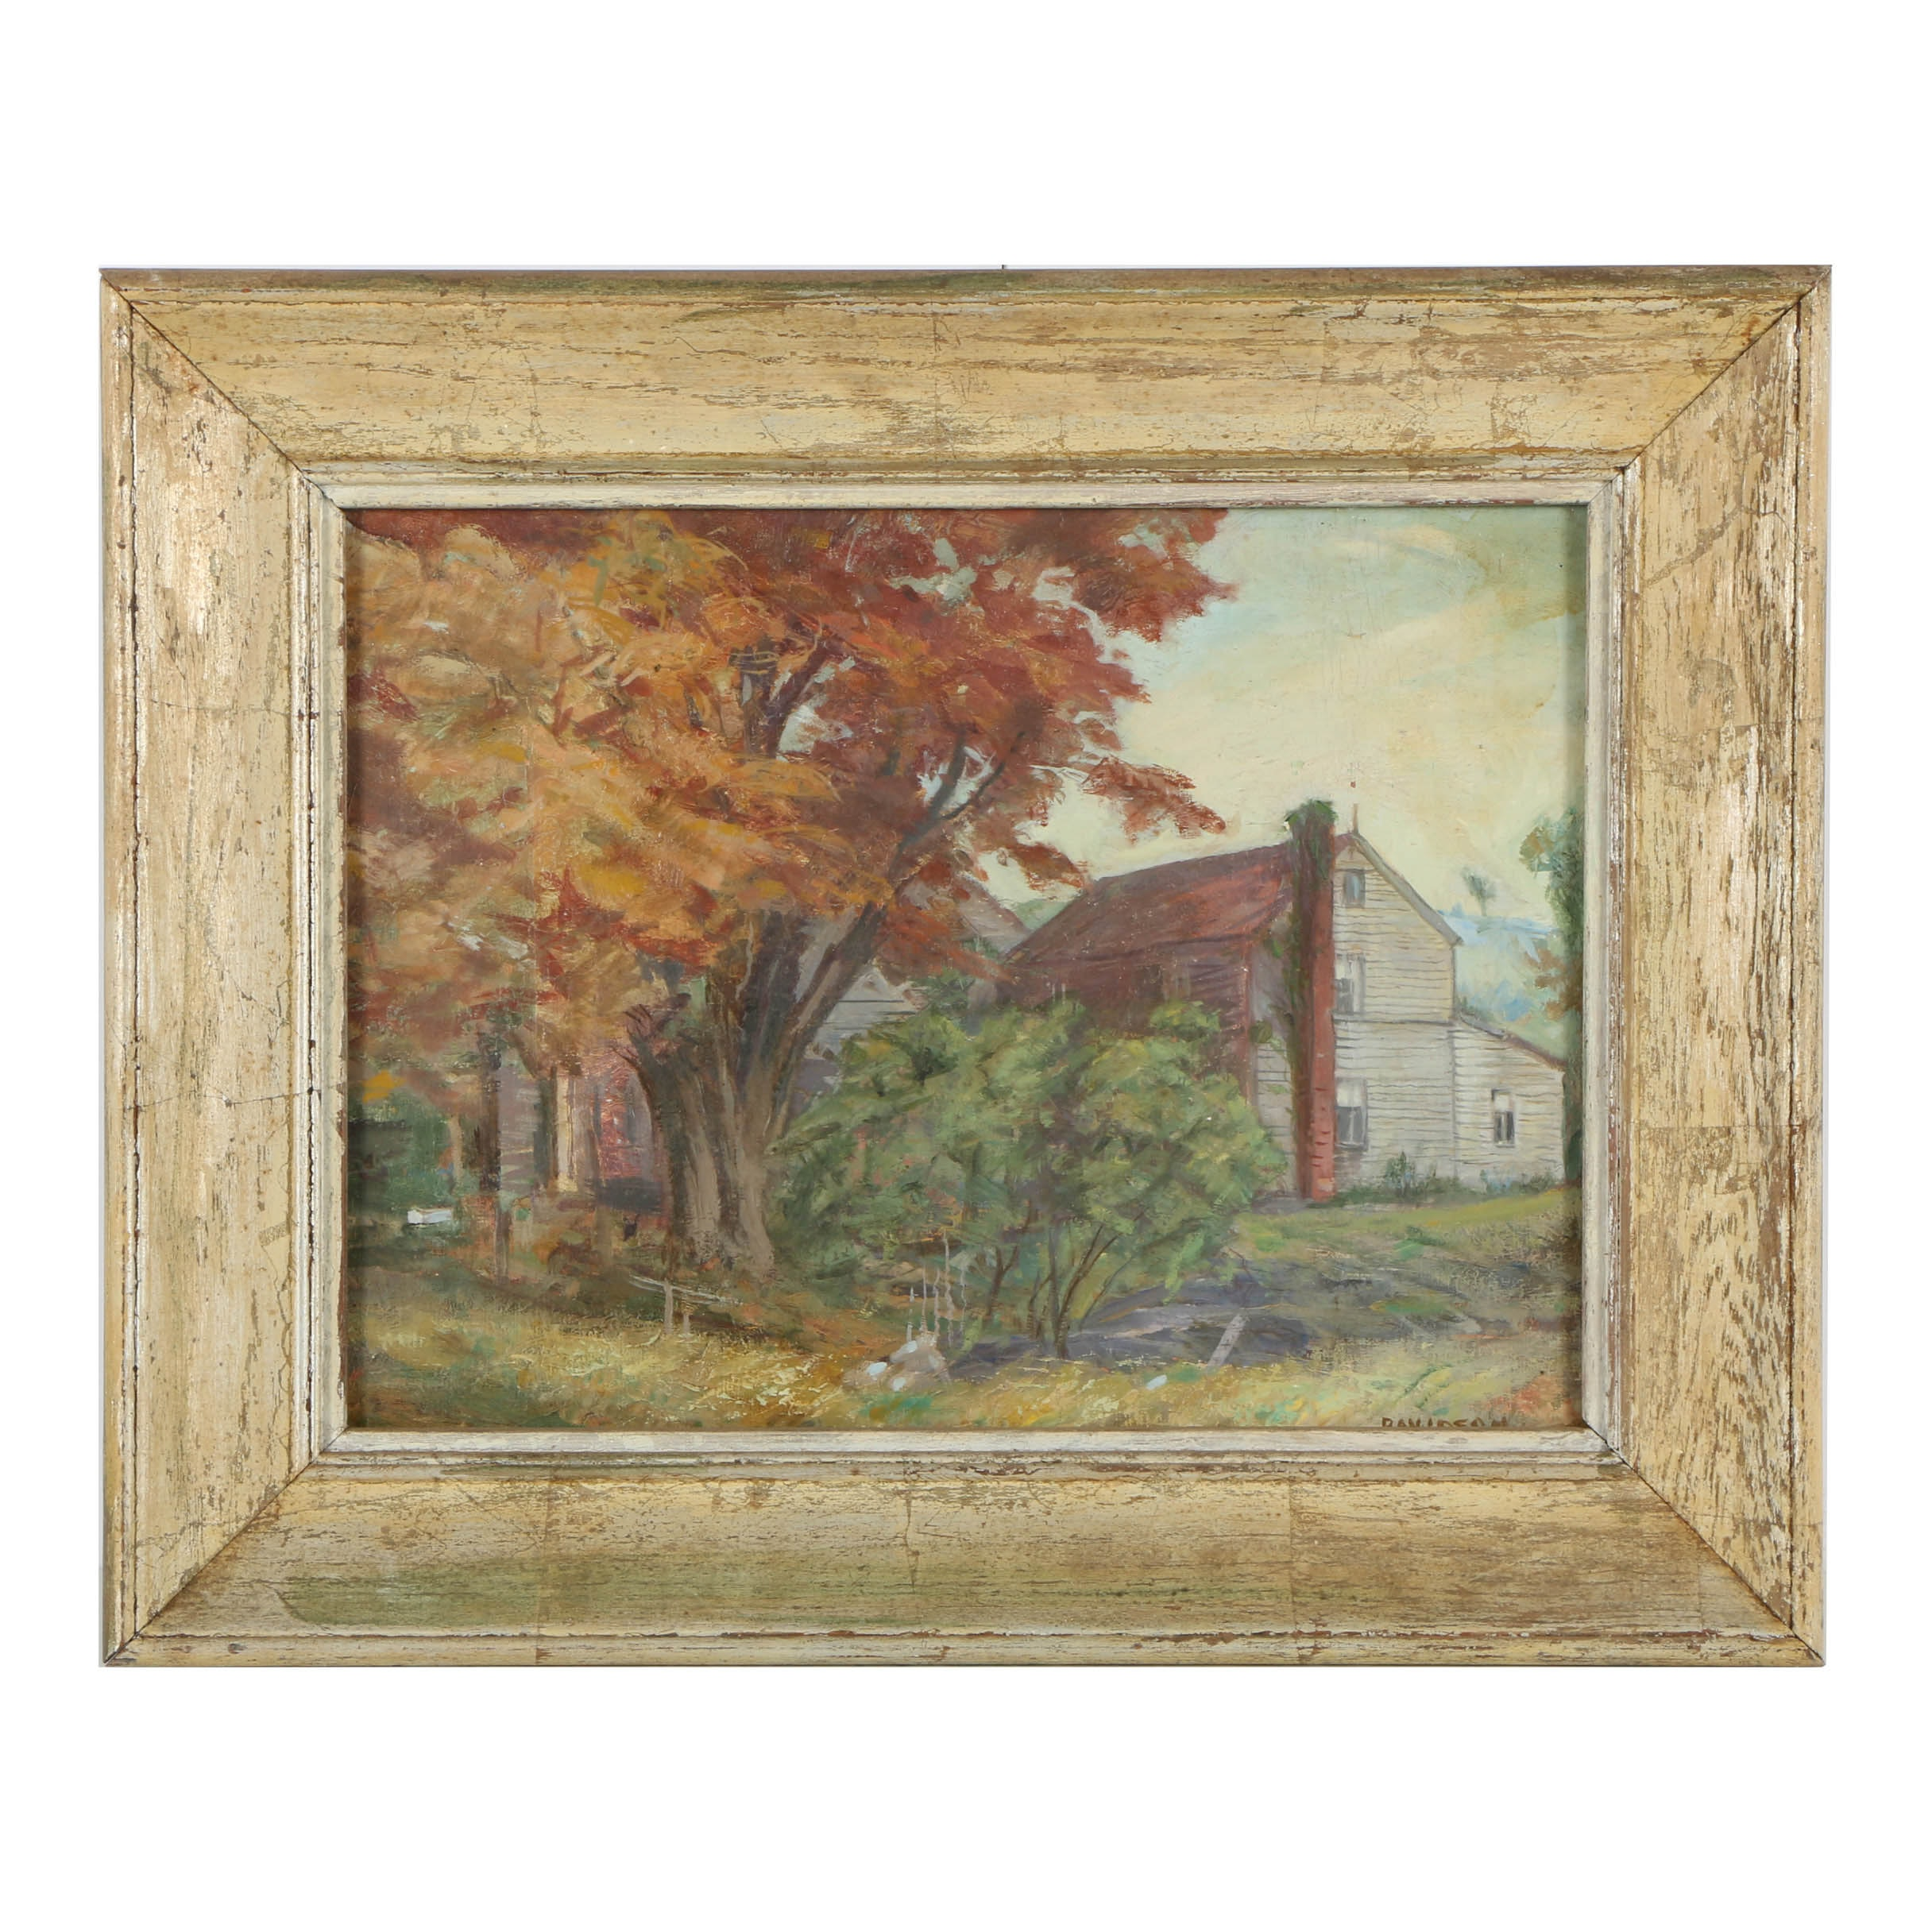 Early 20th-Century Oil Painting on Canvas Panel of Domestic Landscape